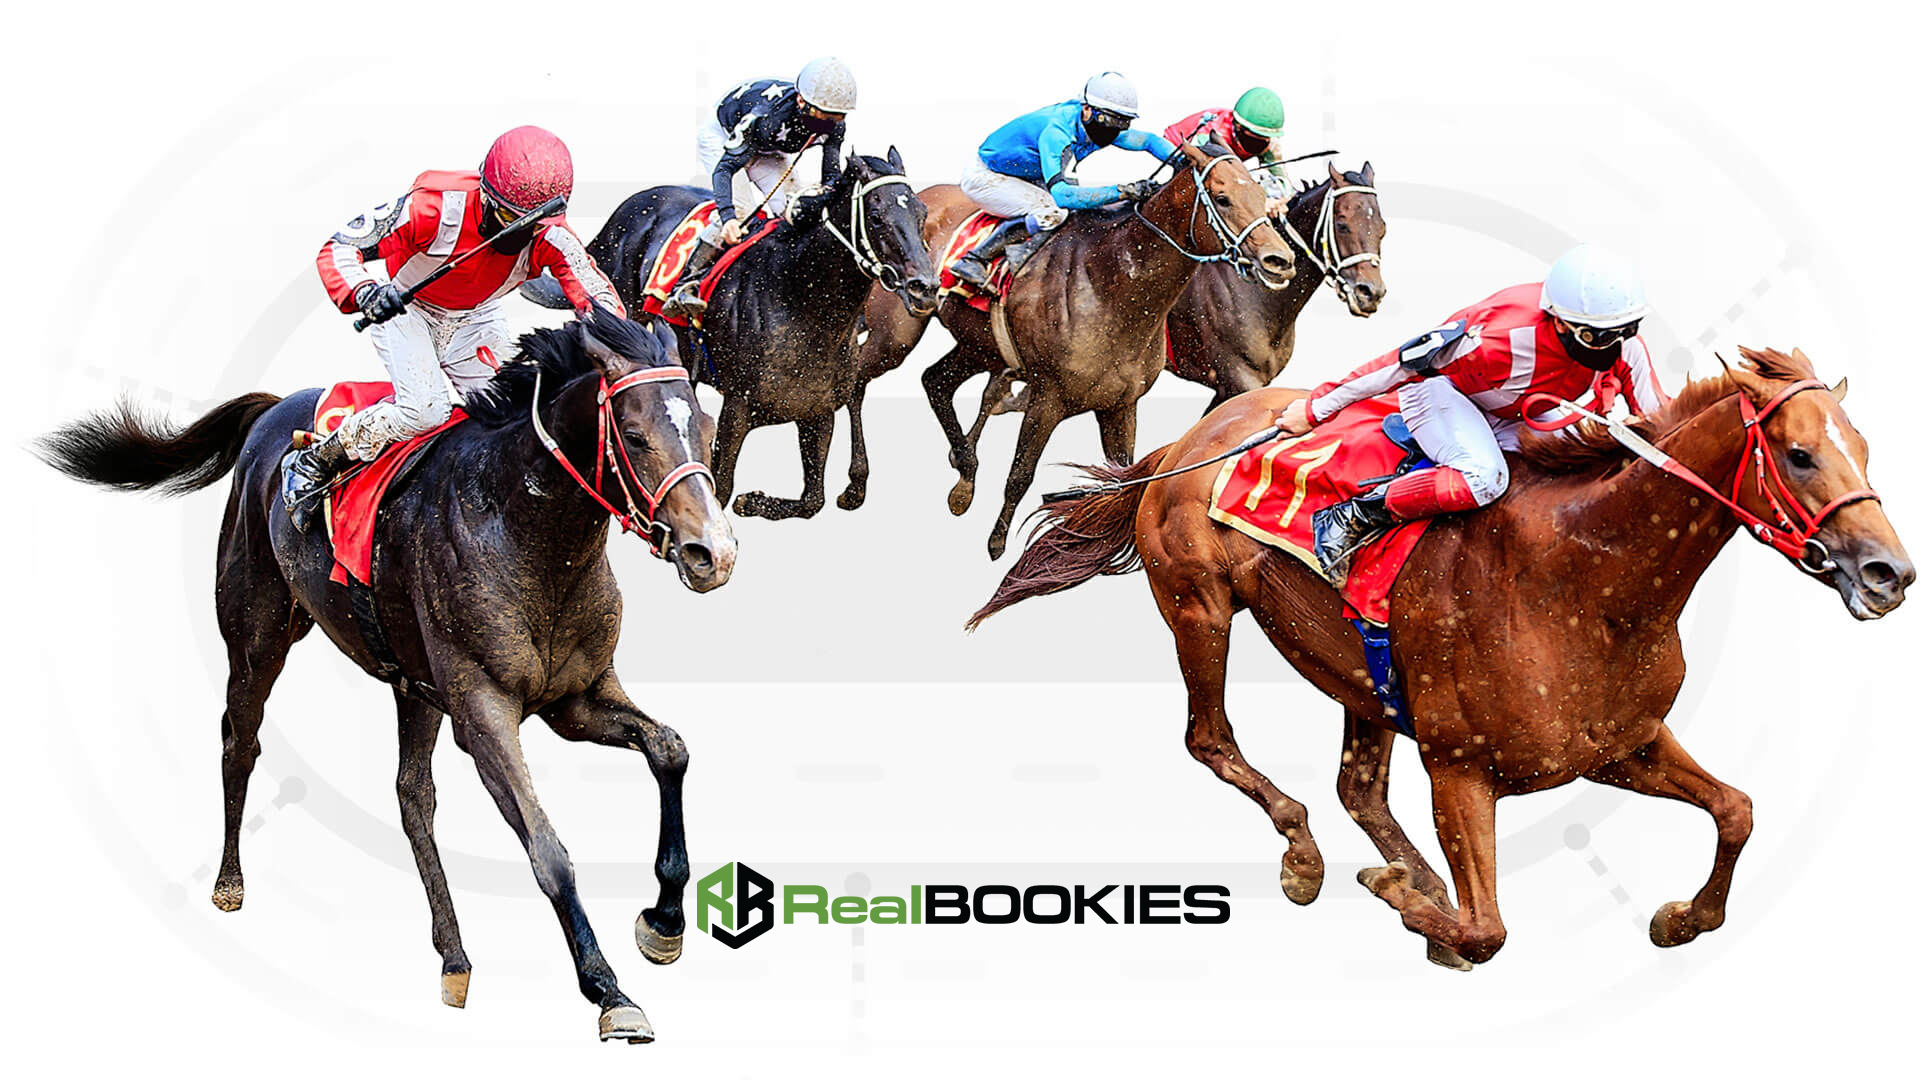 Profit on Horse Racing With Pay Per Head Bookie Software